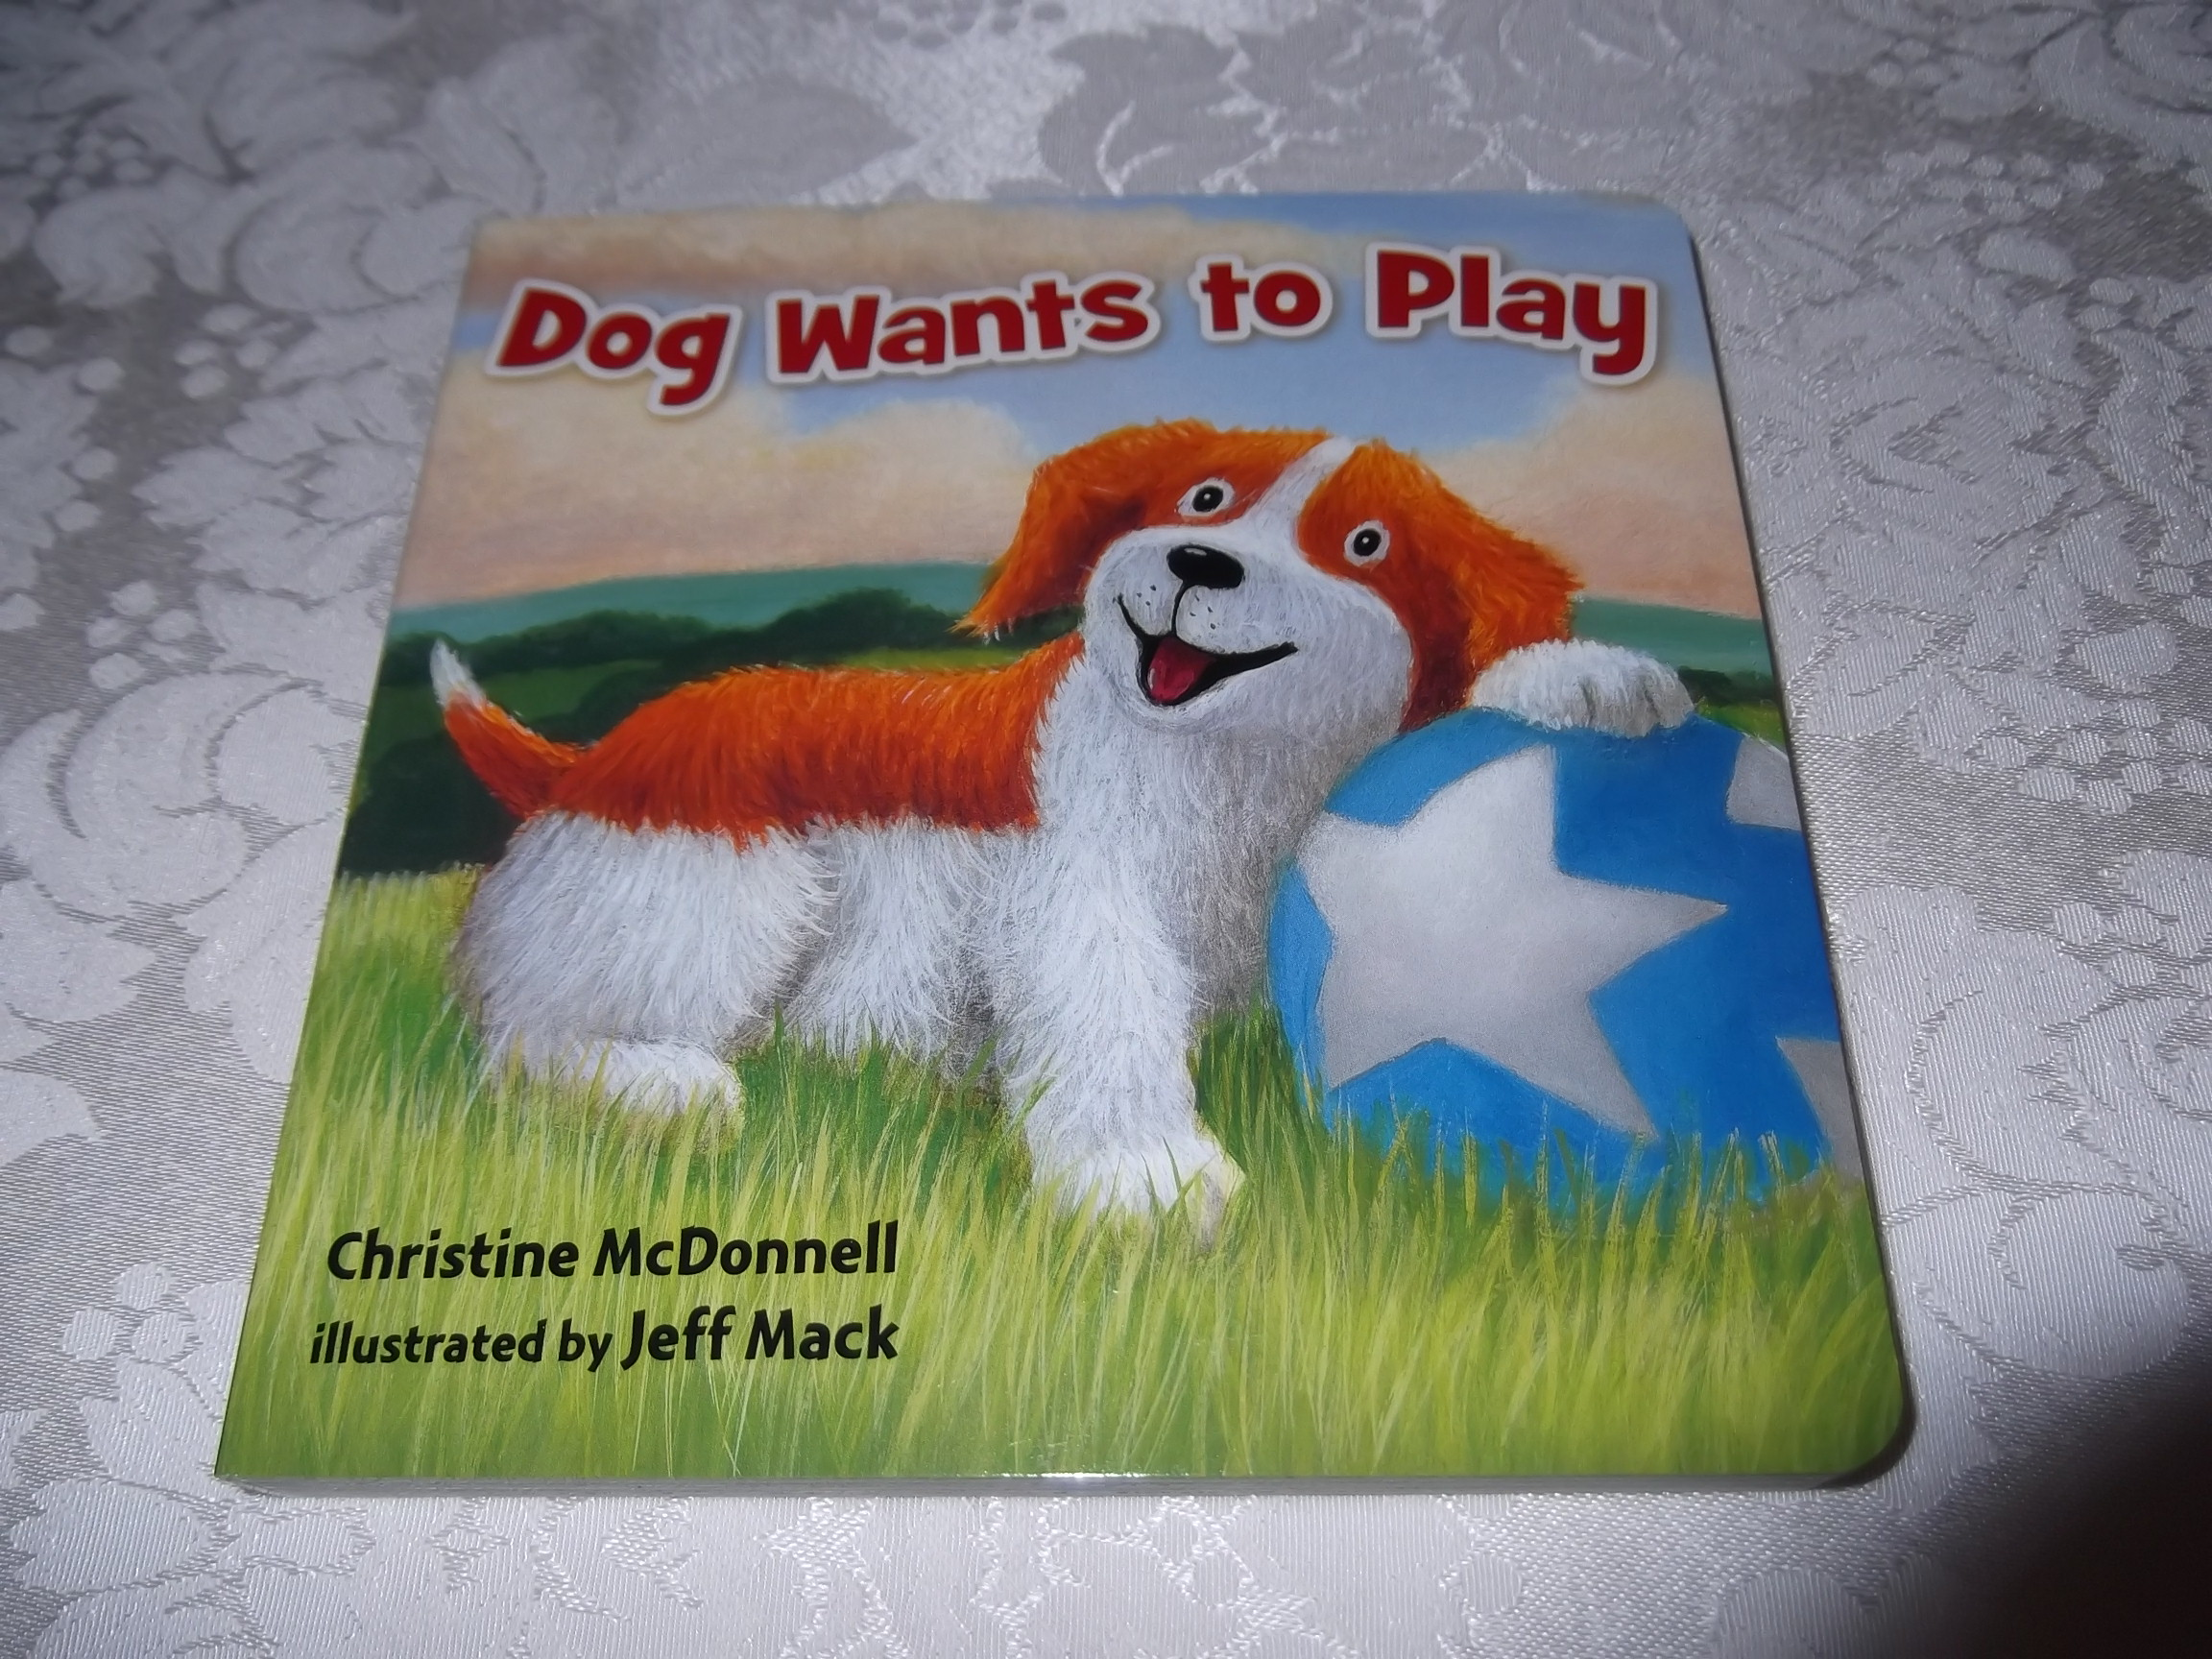 Dog Wants to Play Christine McDonnell Brand New Board Book